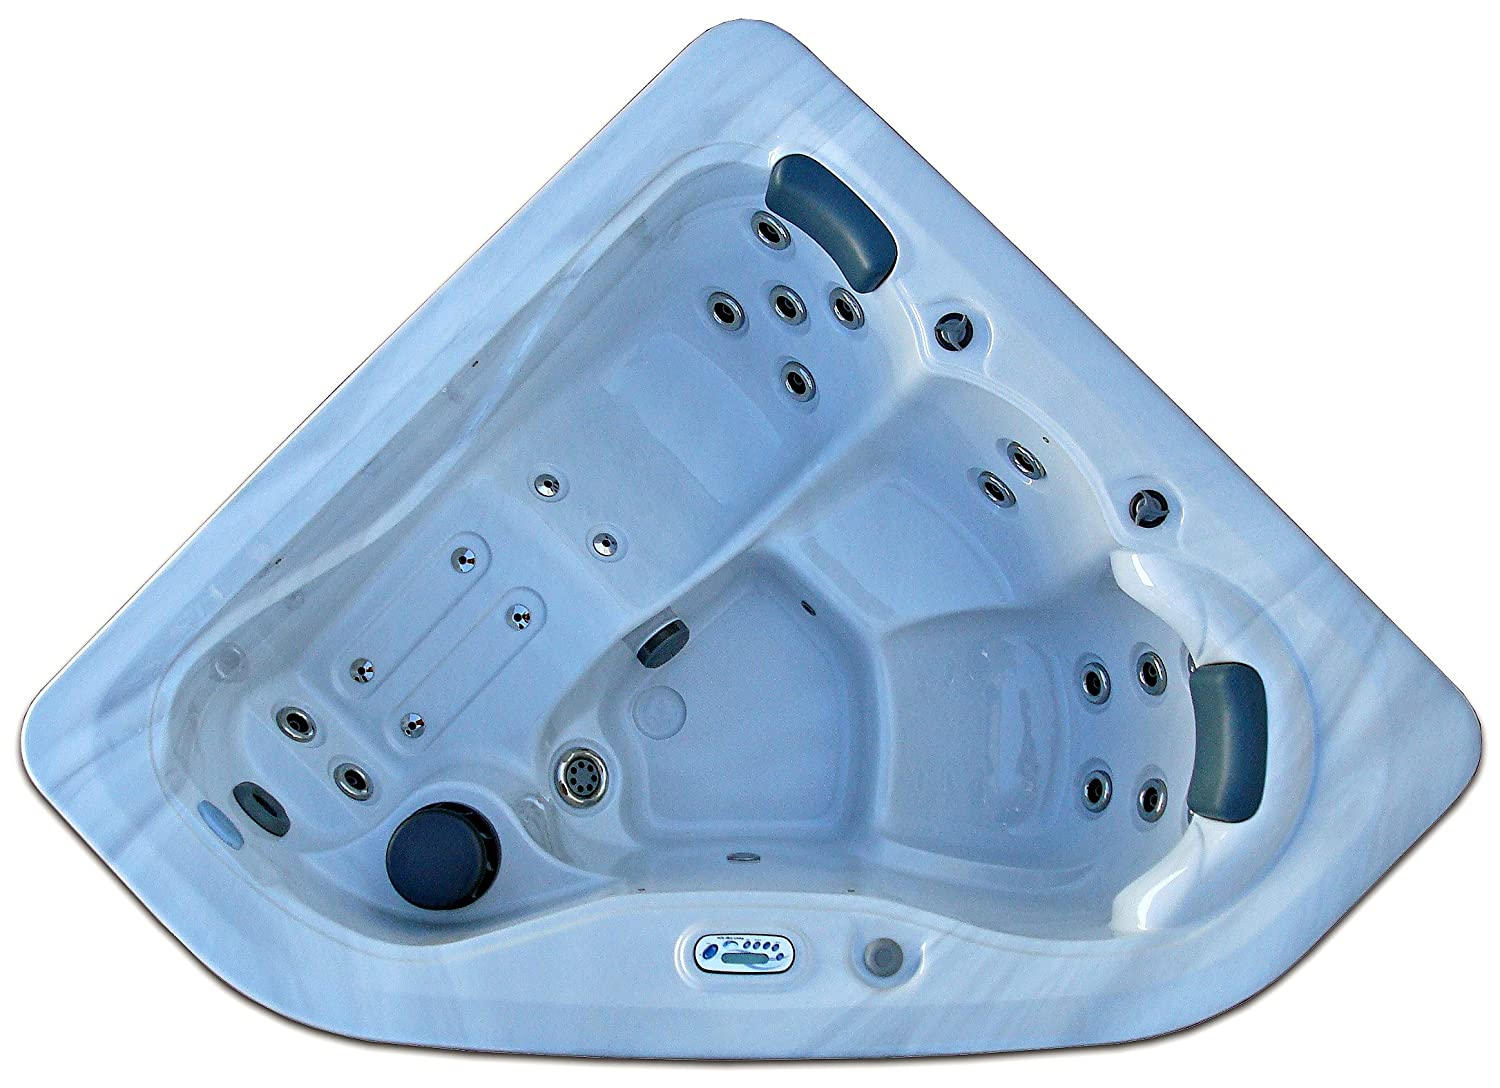 Amazon.com : 3 Person Corner Spa Hot Tub Signature Brand - 2 HP Pump ...